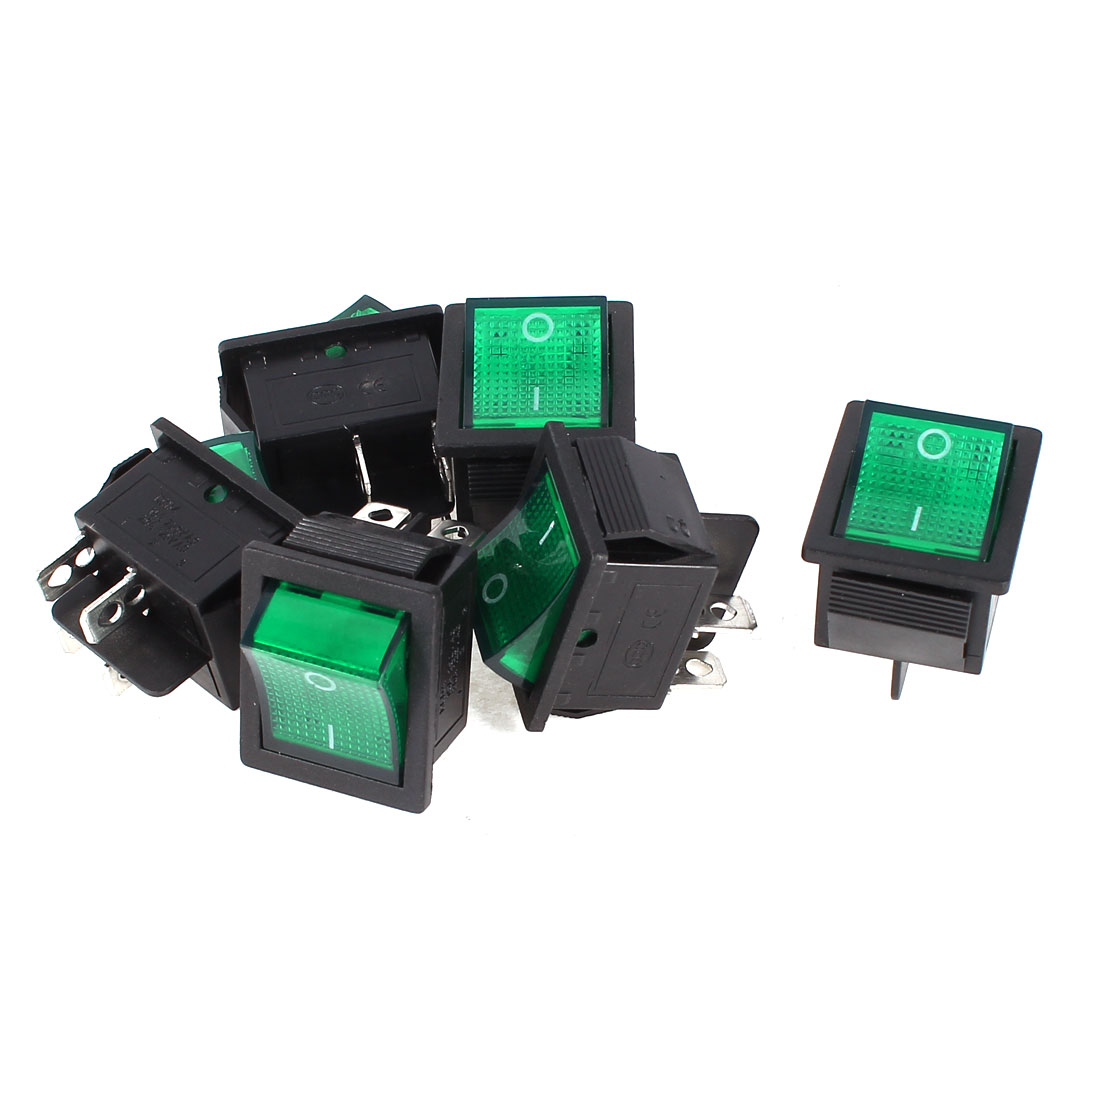 6 Pcs KCD4 DPST 4Pin On/Off Snap in Panel Mount Rocker Switch Green Light AC 15A/250V 20A/125V